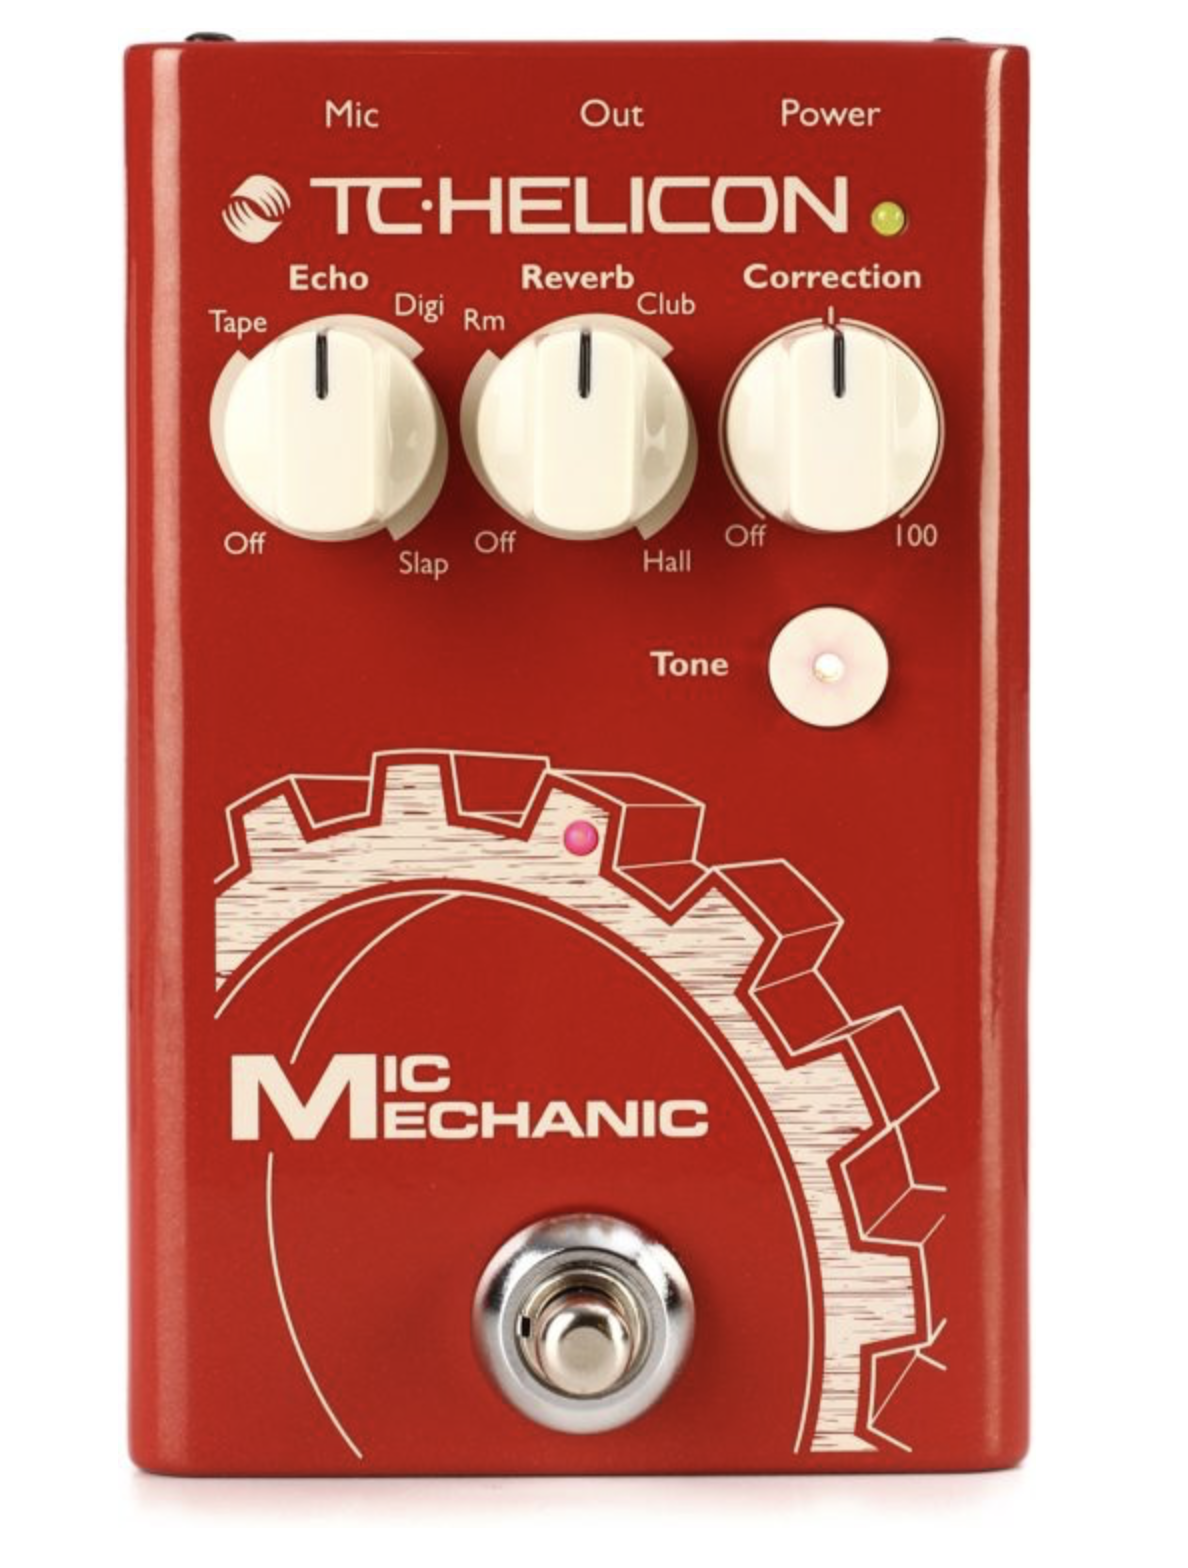 TC HELICON MIC MECHANIC 2 VOCAL EFFECTS PEDAL (996014001)